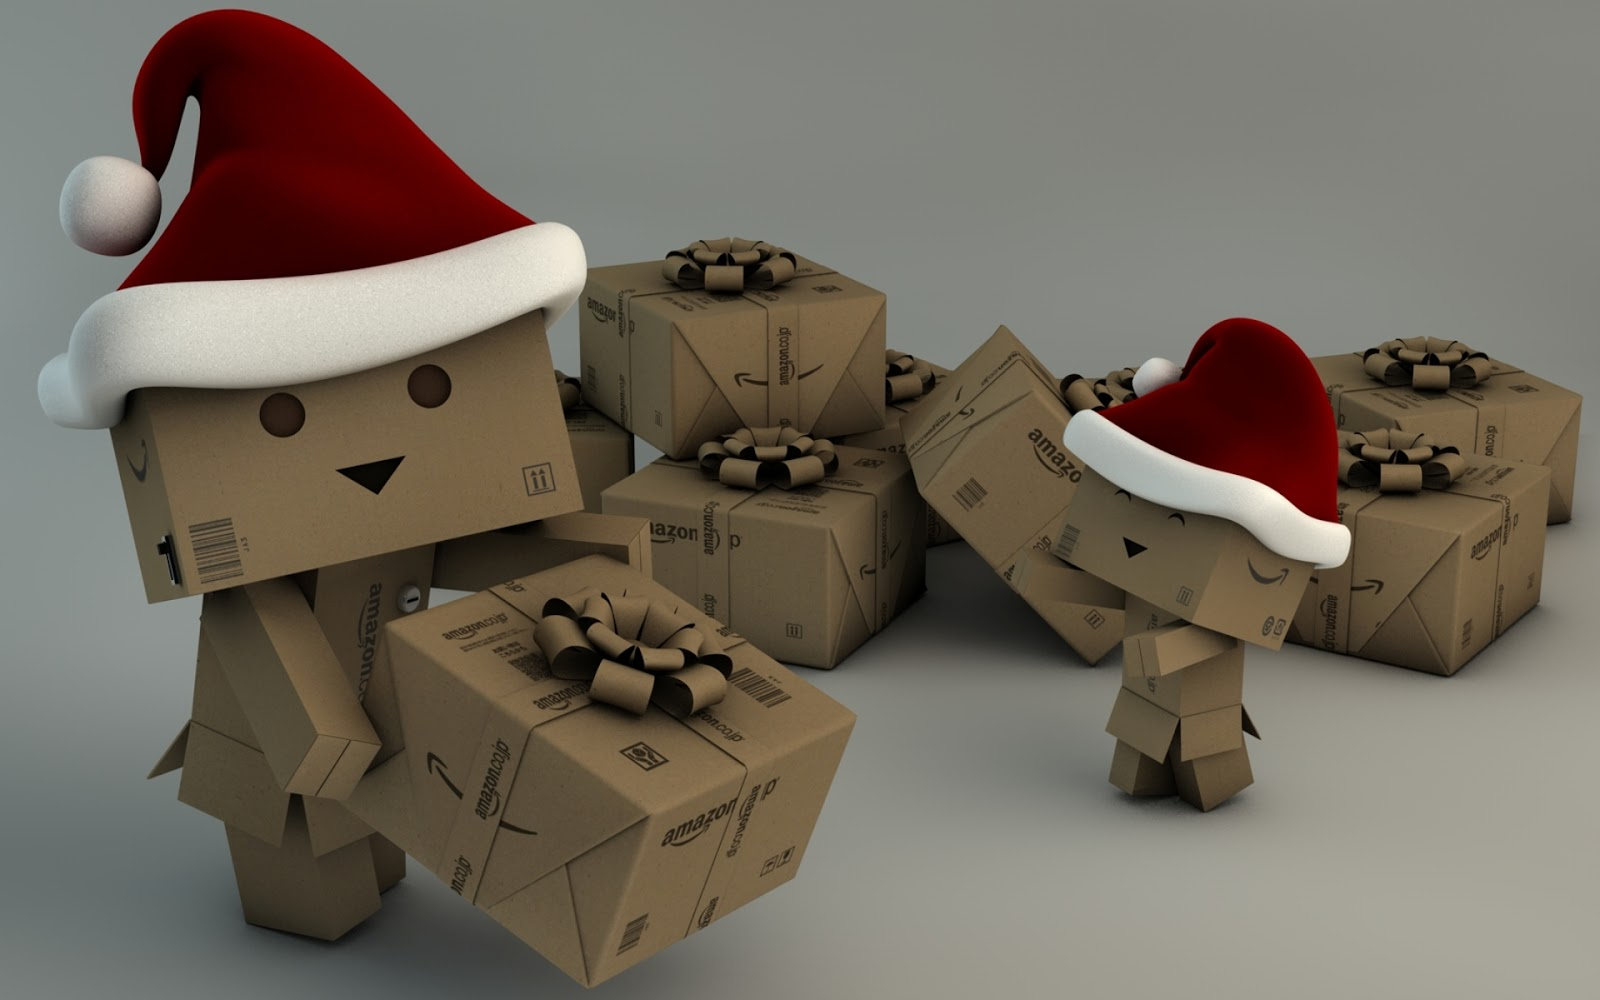 197 best images about Danbo on Pinterest | Amazon box, Wallpaper ...